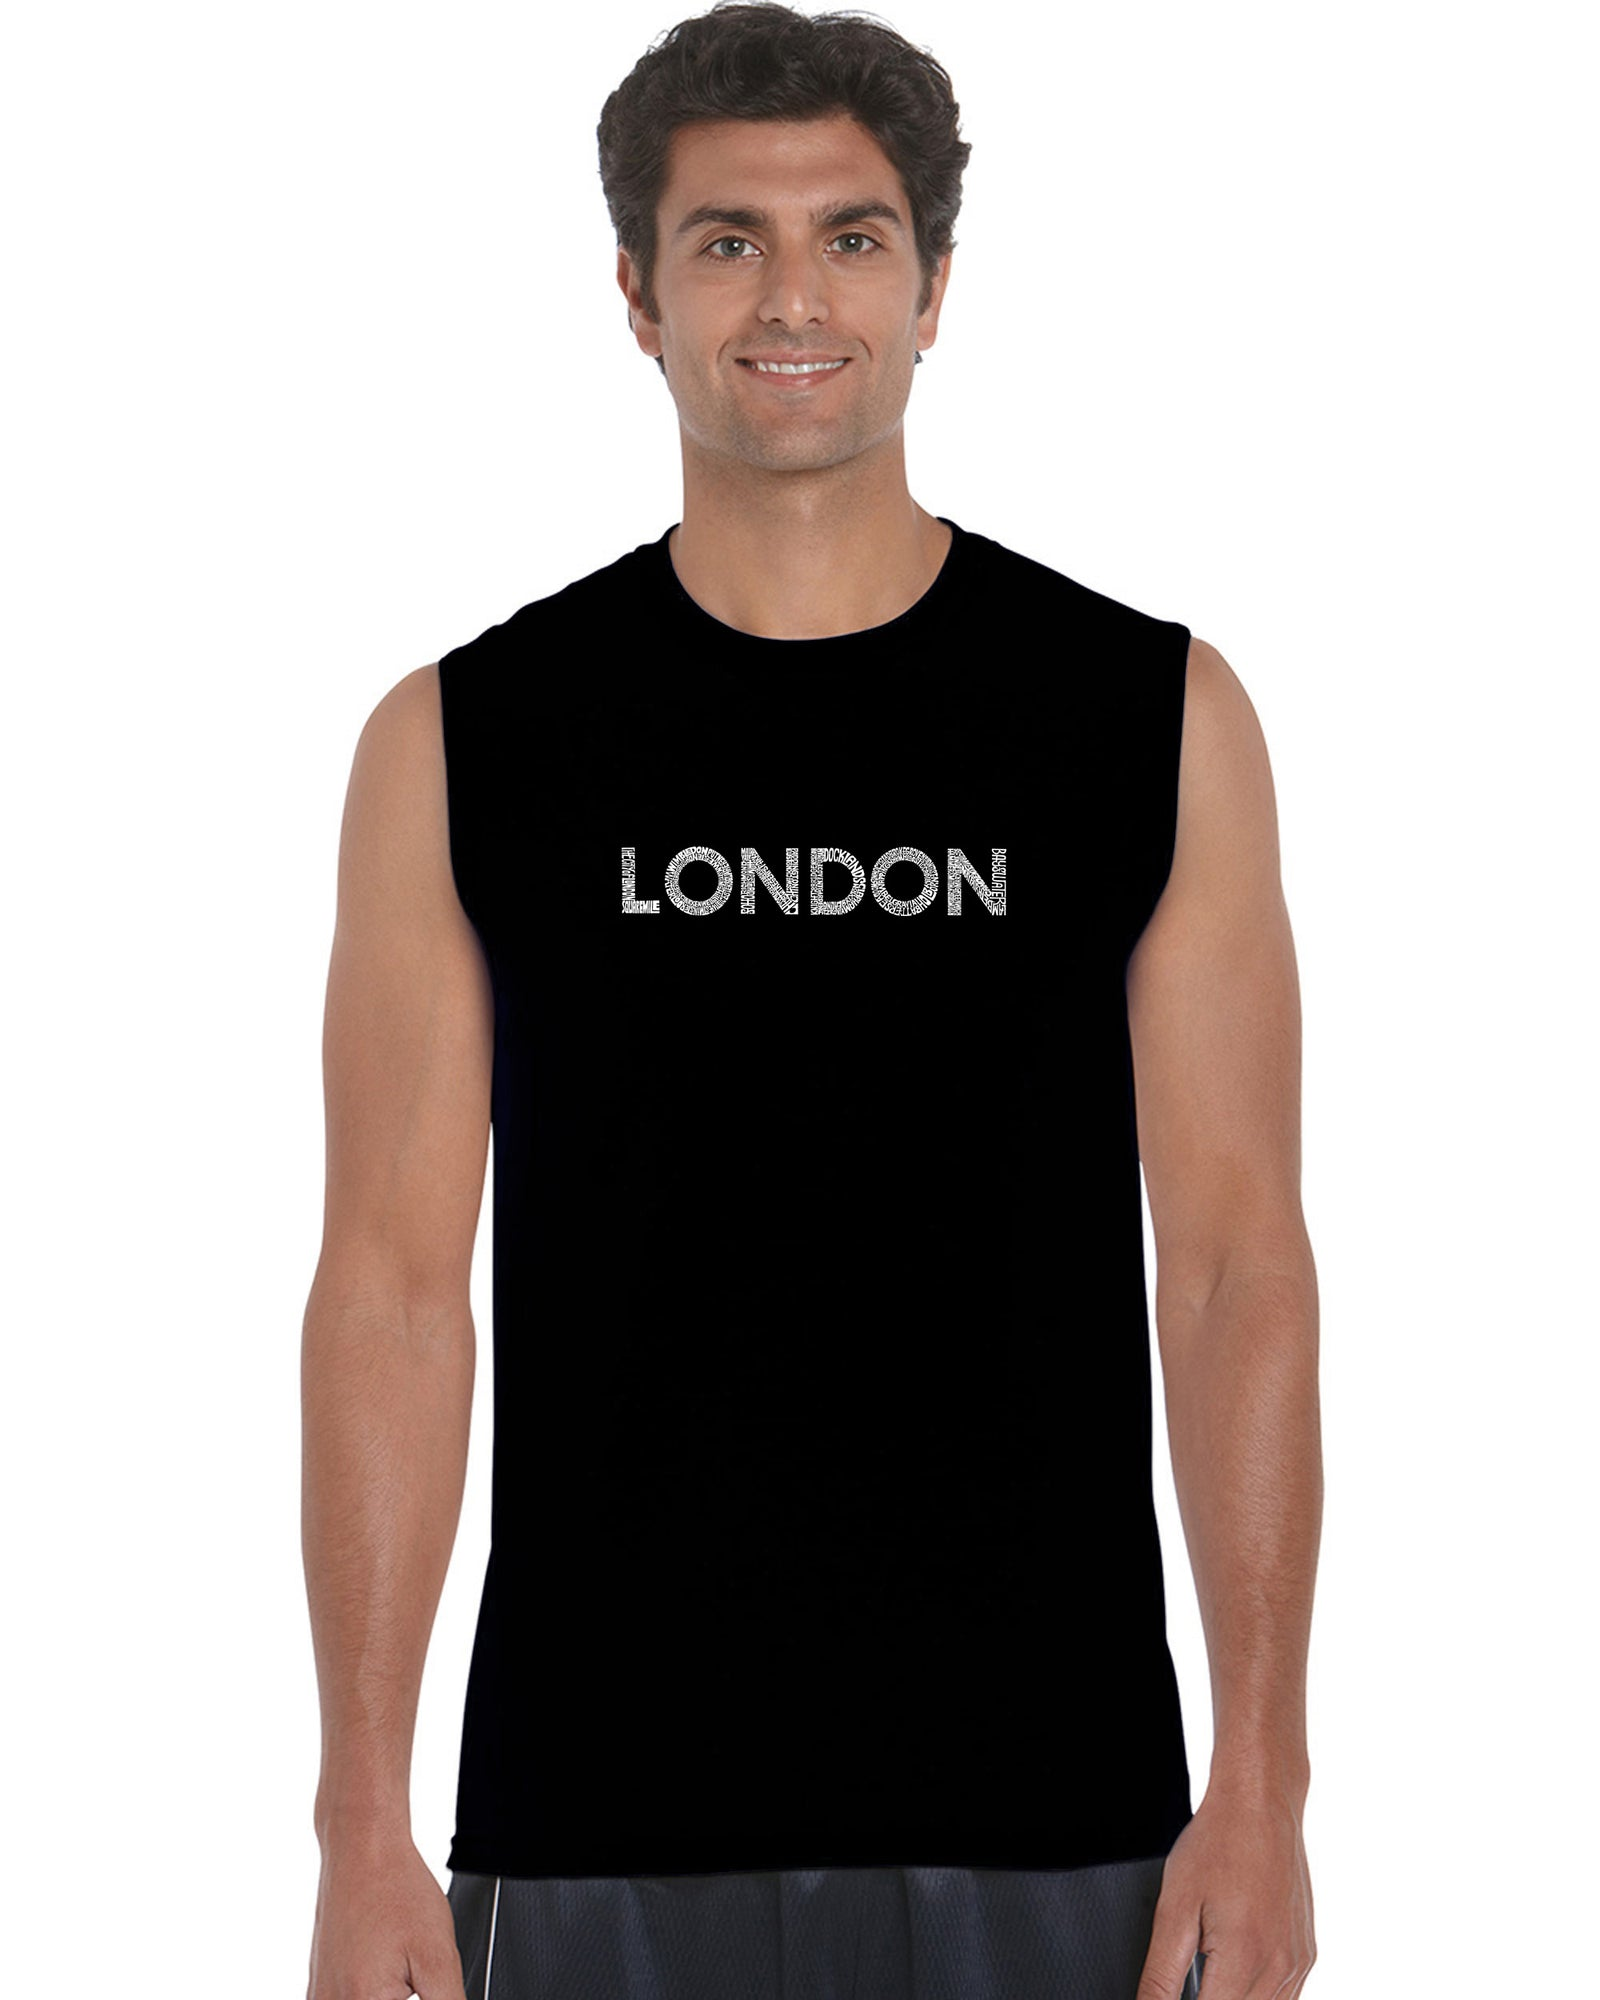 Men's Sleeveless T-shirt - LONDON NEIGHBORHOODS